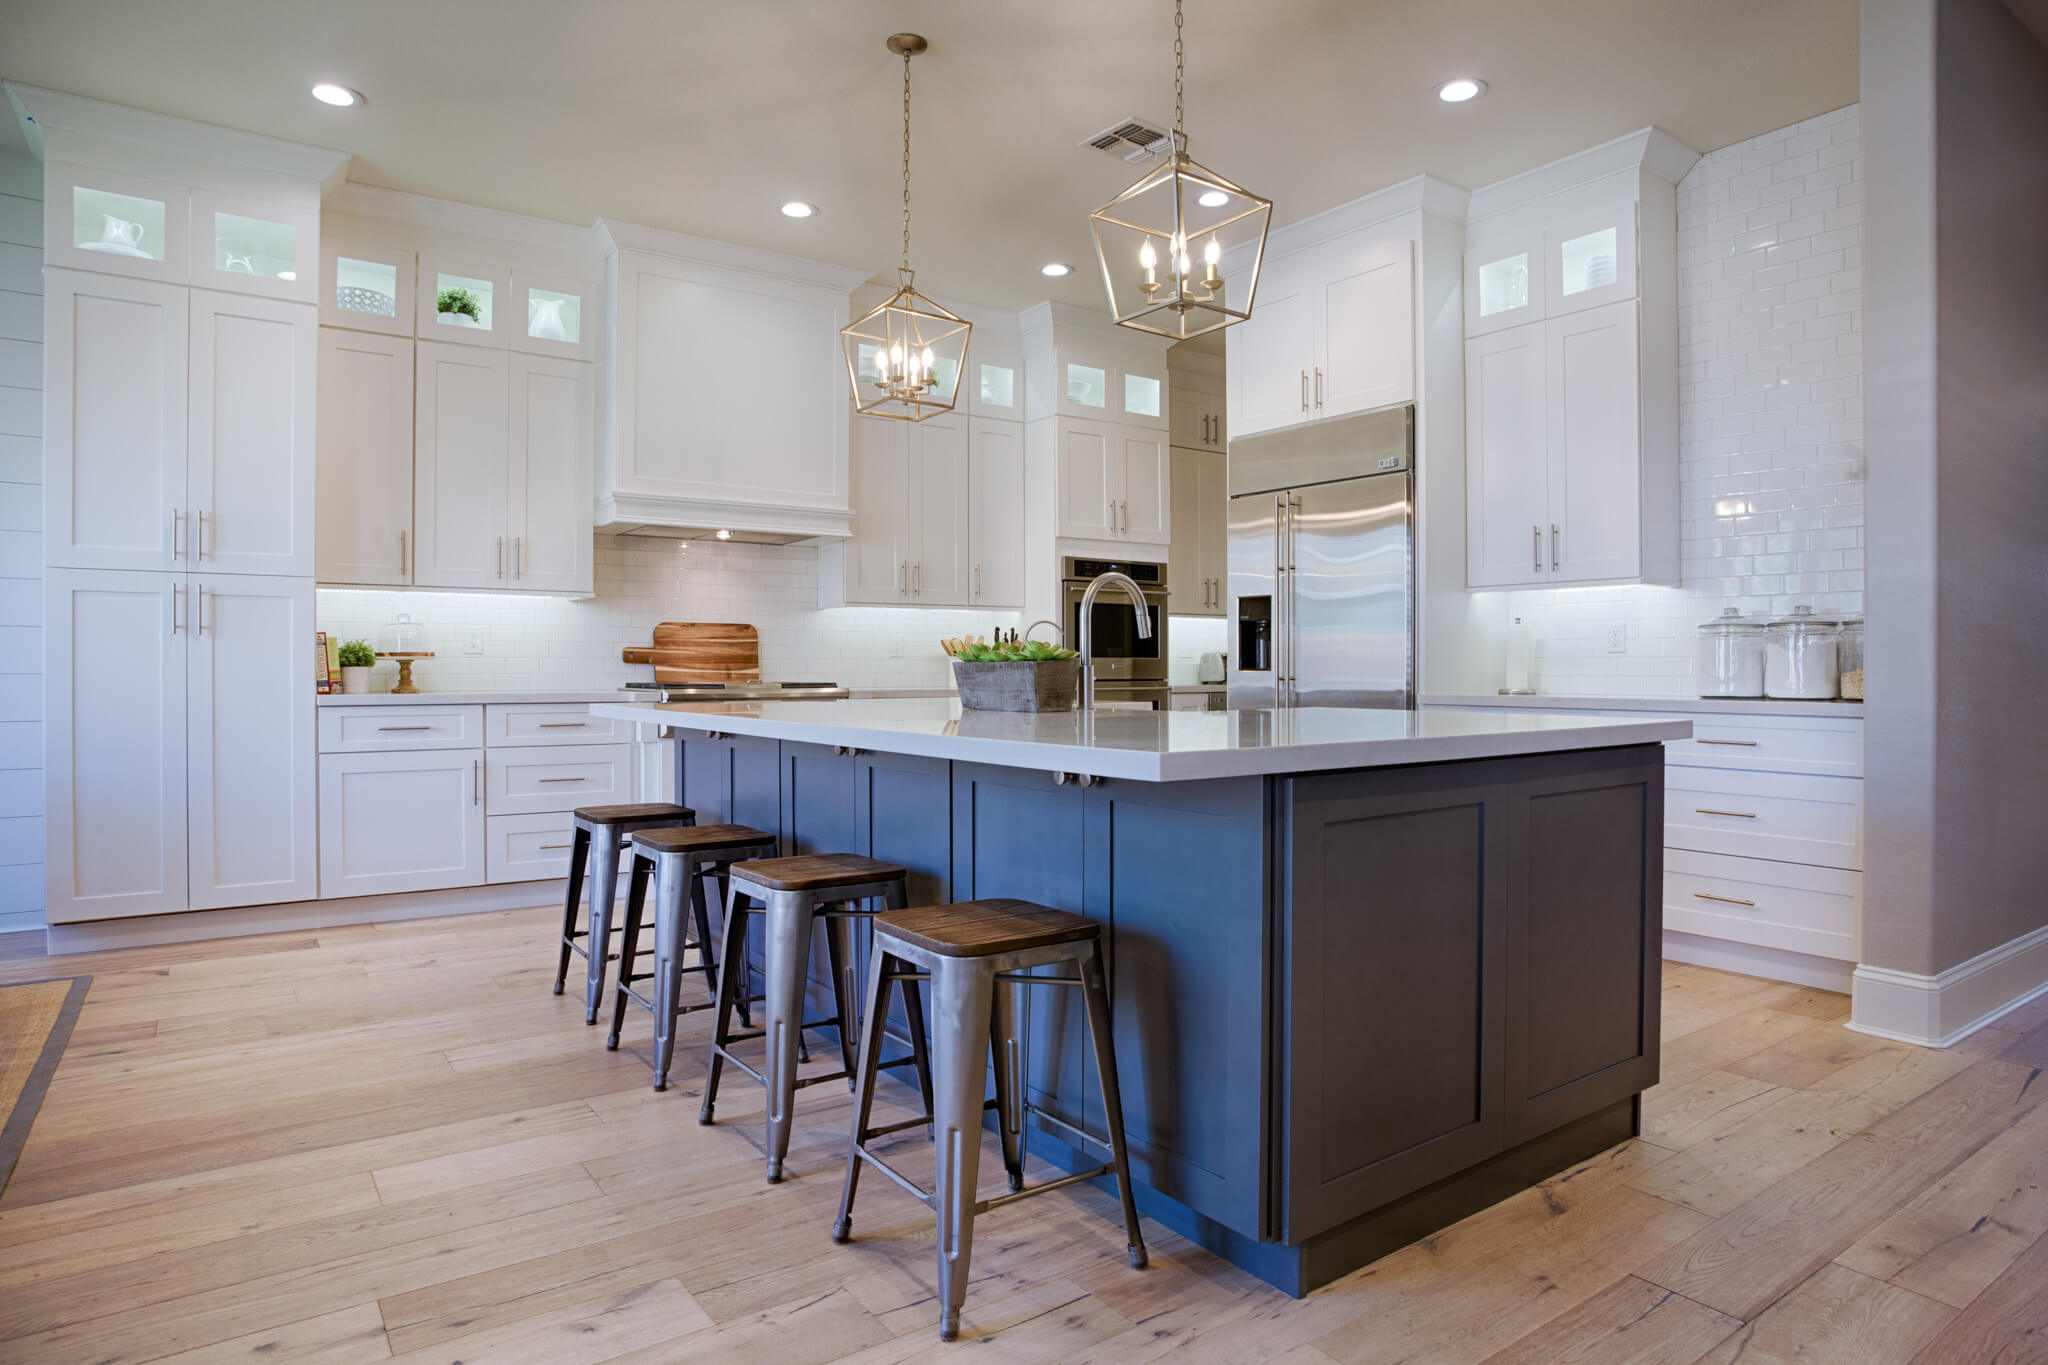 Photos Of White Kitchen Cabinets 35 Best Farmhouse Kitchen Cabinet Ideas And Designs For 2019